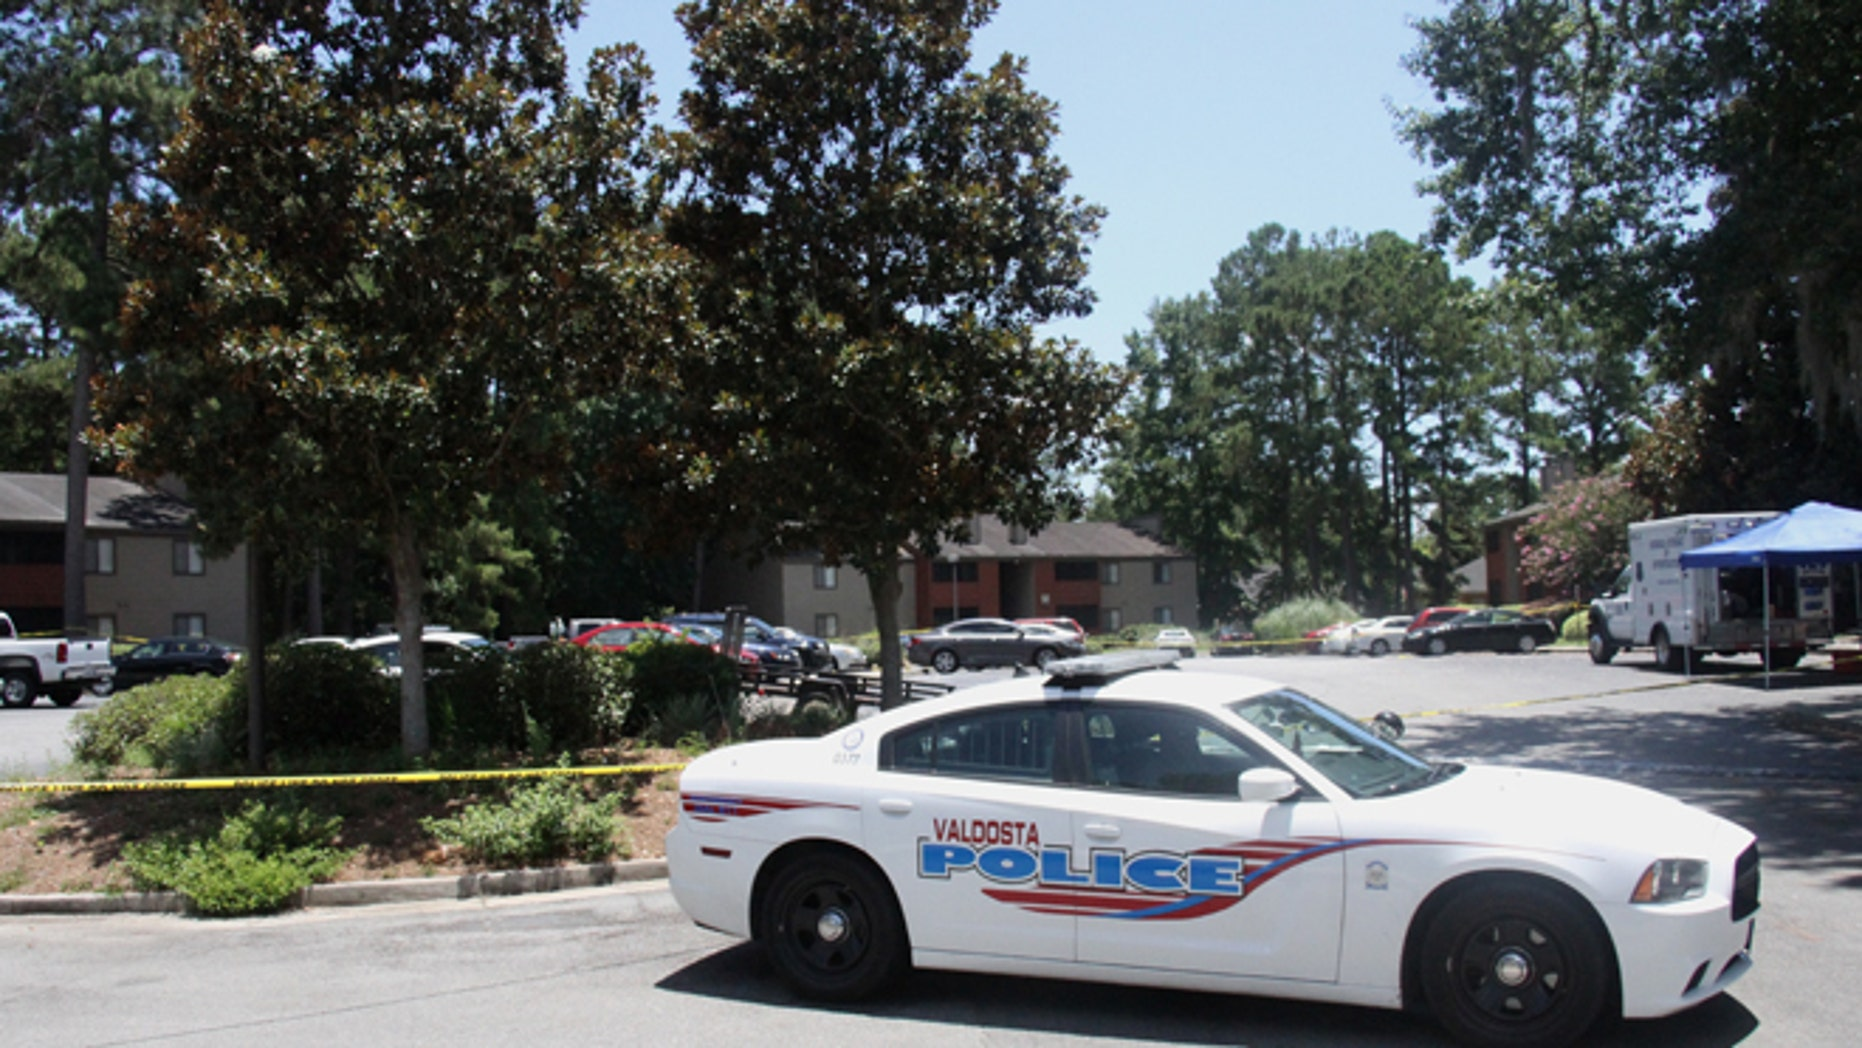 A police vehicle parks near the scene of an officer involved shooting, Friday, July 8, 2016, in Valdosta, Ga. A man who called 911 to report a car break-in Friday ambushed a south Georgia police officer dispatched to the scene, sparking a shootout in which both the officer and suspect were wounded, authorities said. Both are expected to survive.(Gabe Burns/The Daily Times via AP) MANDATORY CREDIT